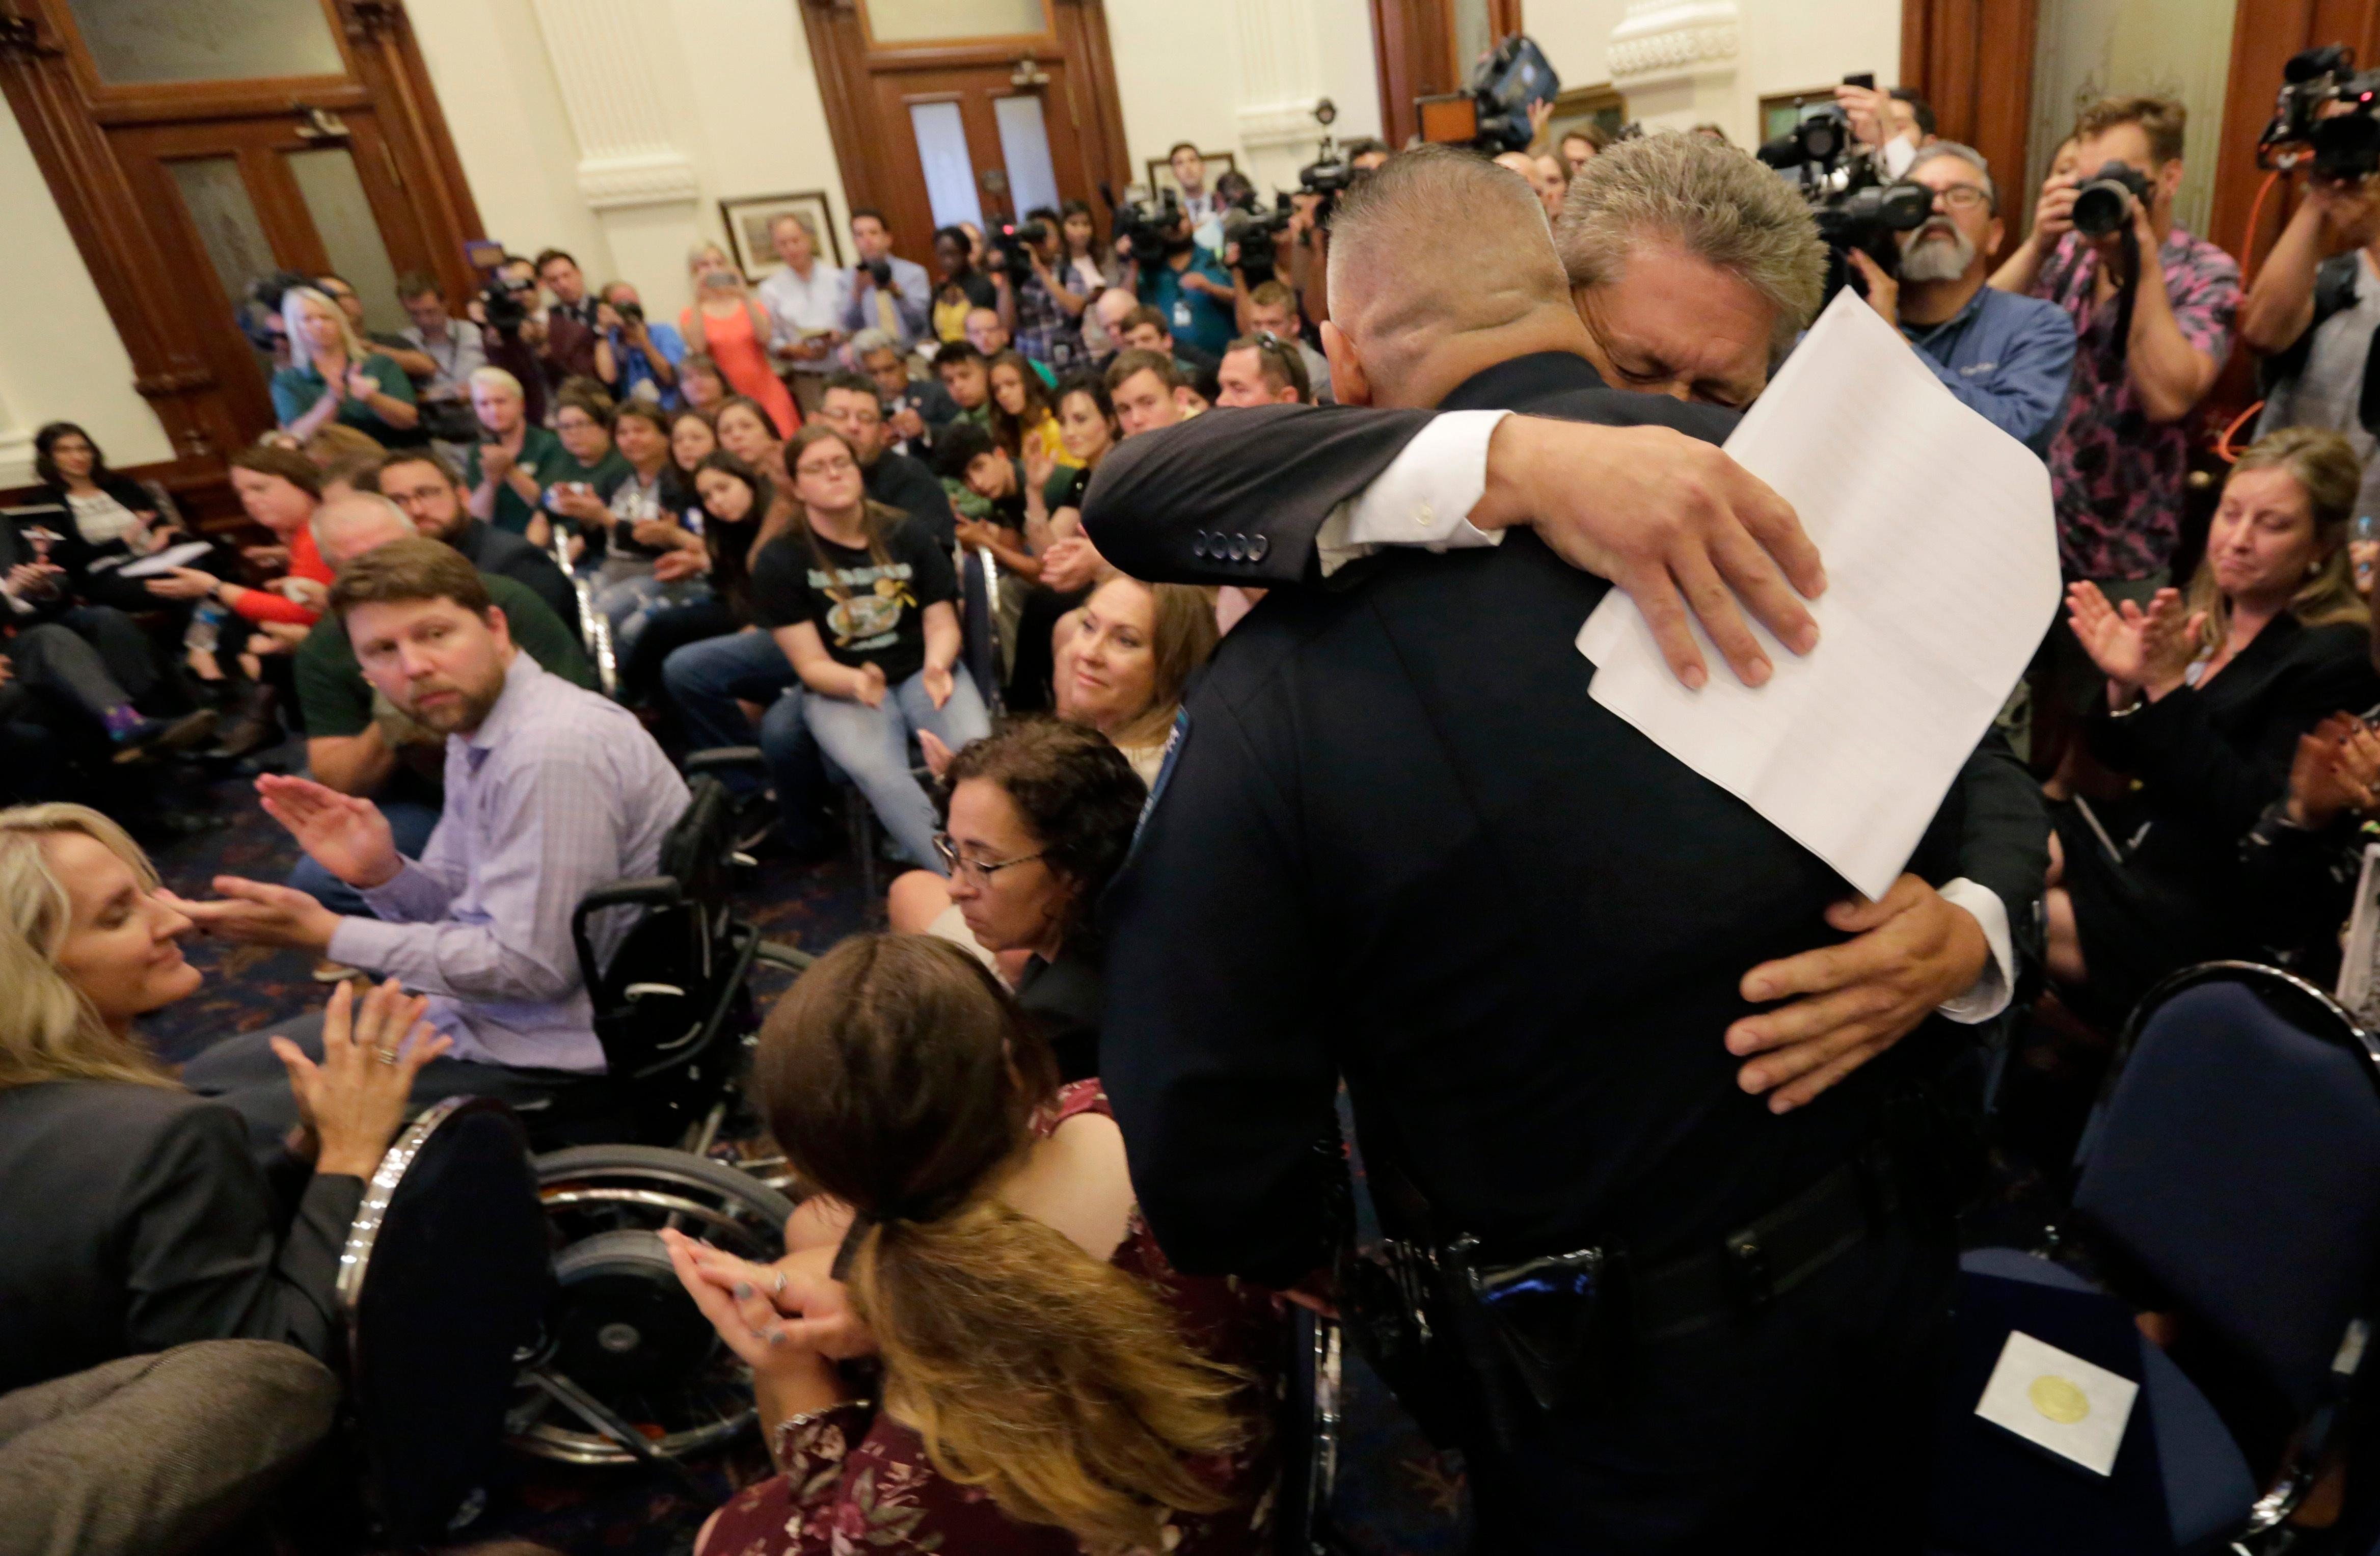 Scot Rice hugs Santa Fe Independent School District police officer John Banda after telling his story during a roundtable discussion in Austin, Texas, Thursday, May 24, 2018, hosted by Texas Gov. Gregg Abbott to address safety and security at Texas schools in the wake of the shooting at Sante Fe, Texas. Rice's wife Flo Rice, a substitute teacher, was carried from the Santa Fe scene of last week's school shooting by officer Banda after she was shot in the leg. (AP Photo/Eric Gay)